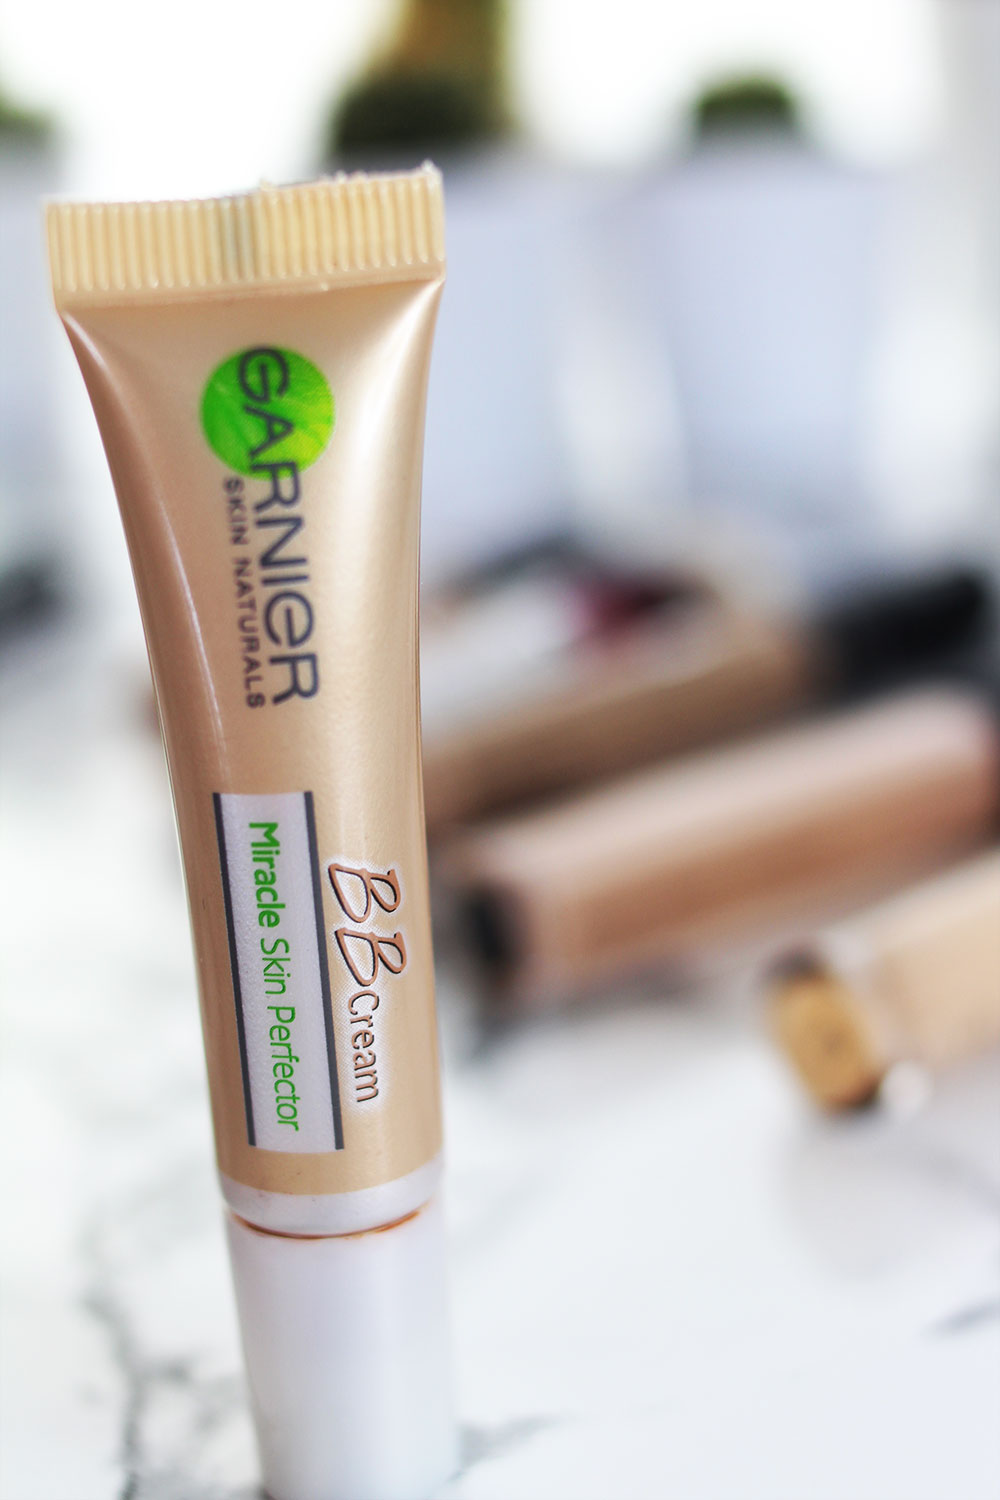 garnier-bb-cream-skin-perfector-test